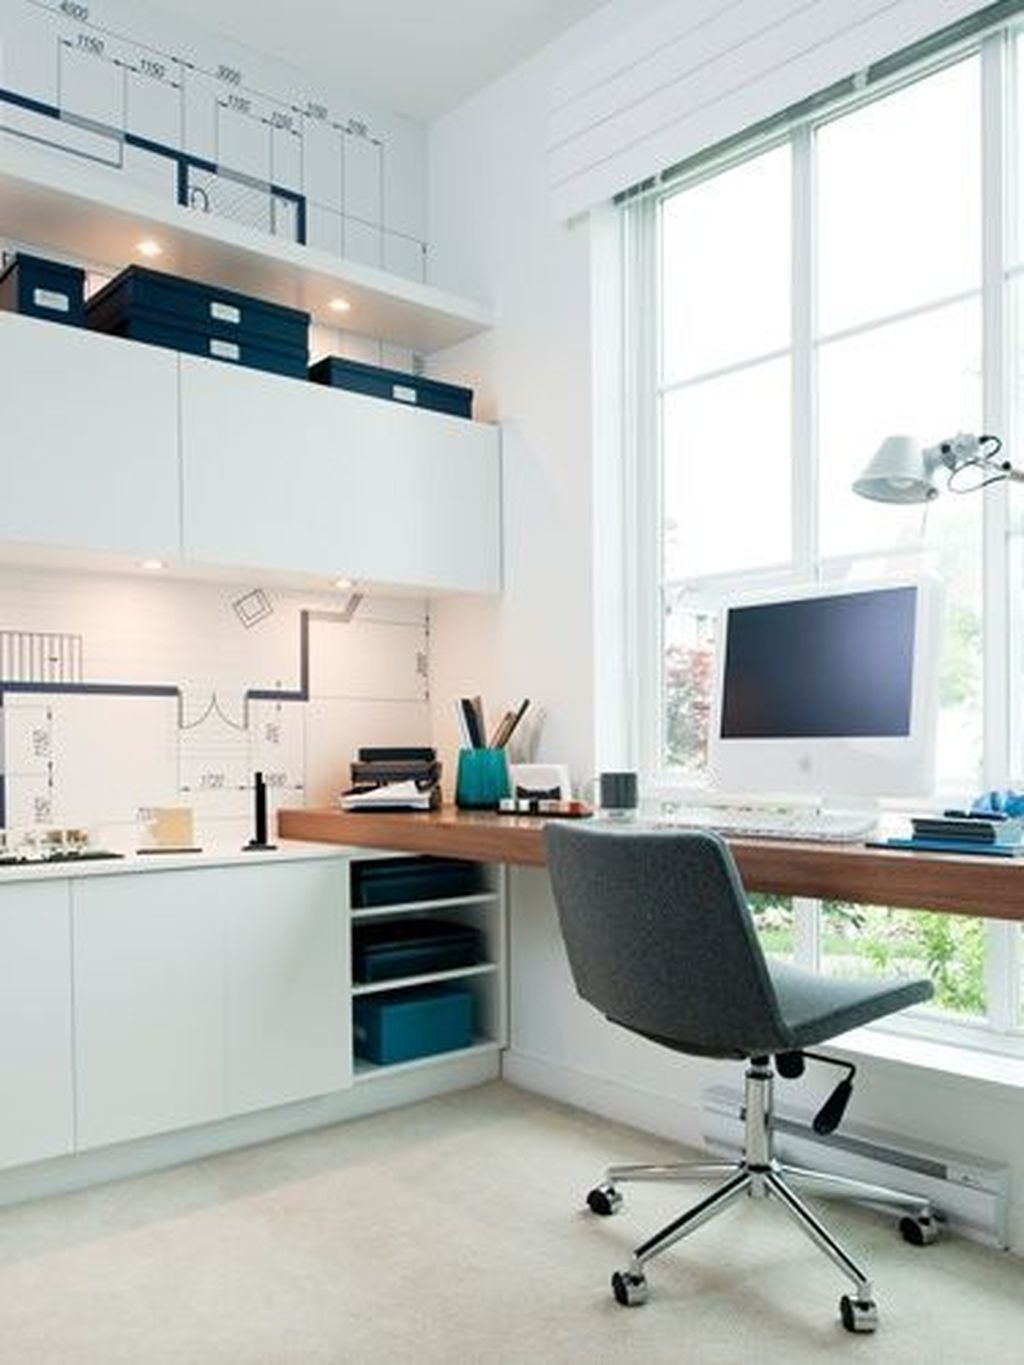 34 Cool And Thoughtful Home Office Storage Ideas